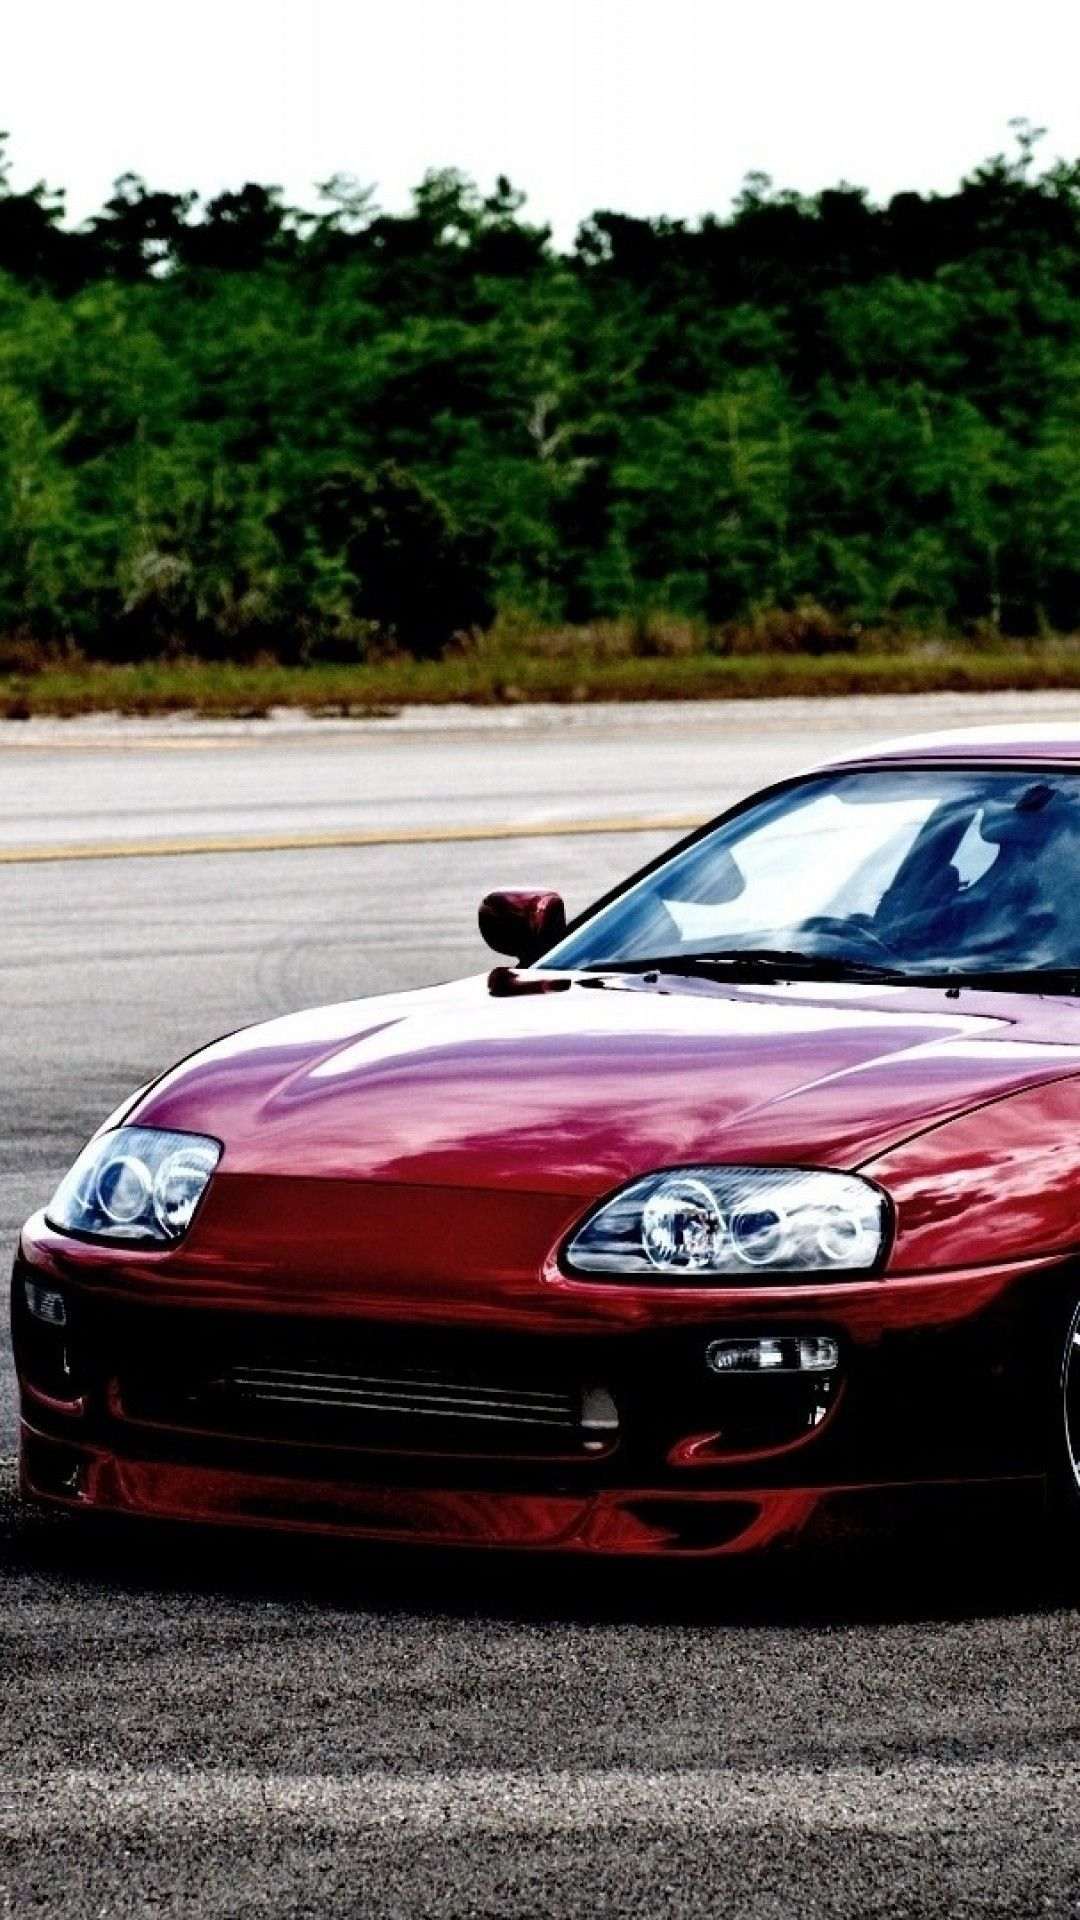 1080x1920 Toyota Supra iPhone Wallpaper (72+ images)